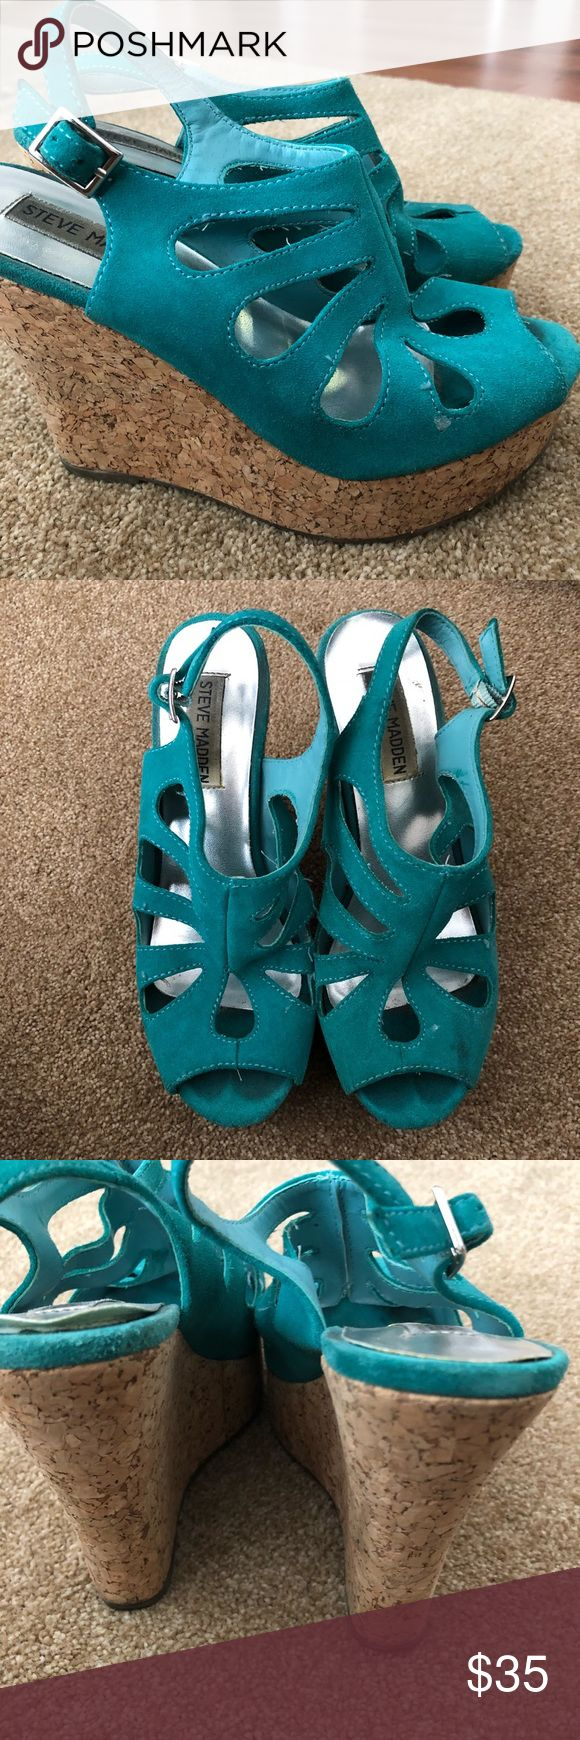 Size 6.5 Steve Madden teal wedges 😍 Size 6.5 wedges from Steve Madden. Worn a few times, amazingly comfortable! Perfect for summer. **NO TRADES** Steve Madden Shoes Wedges